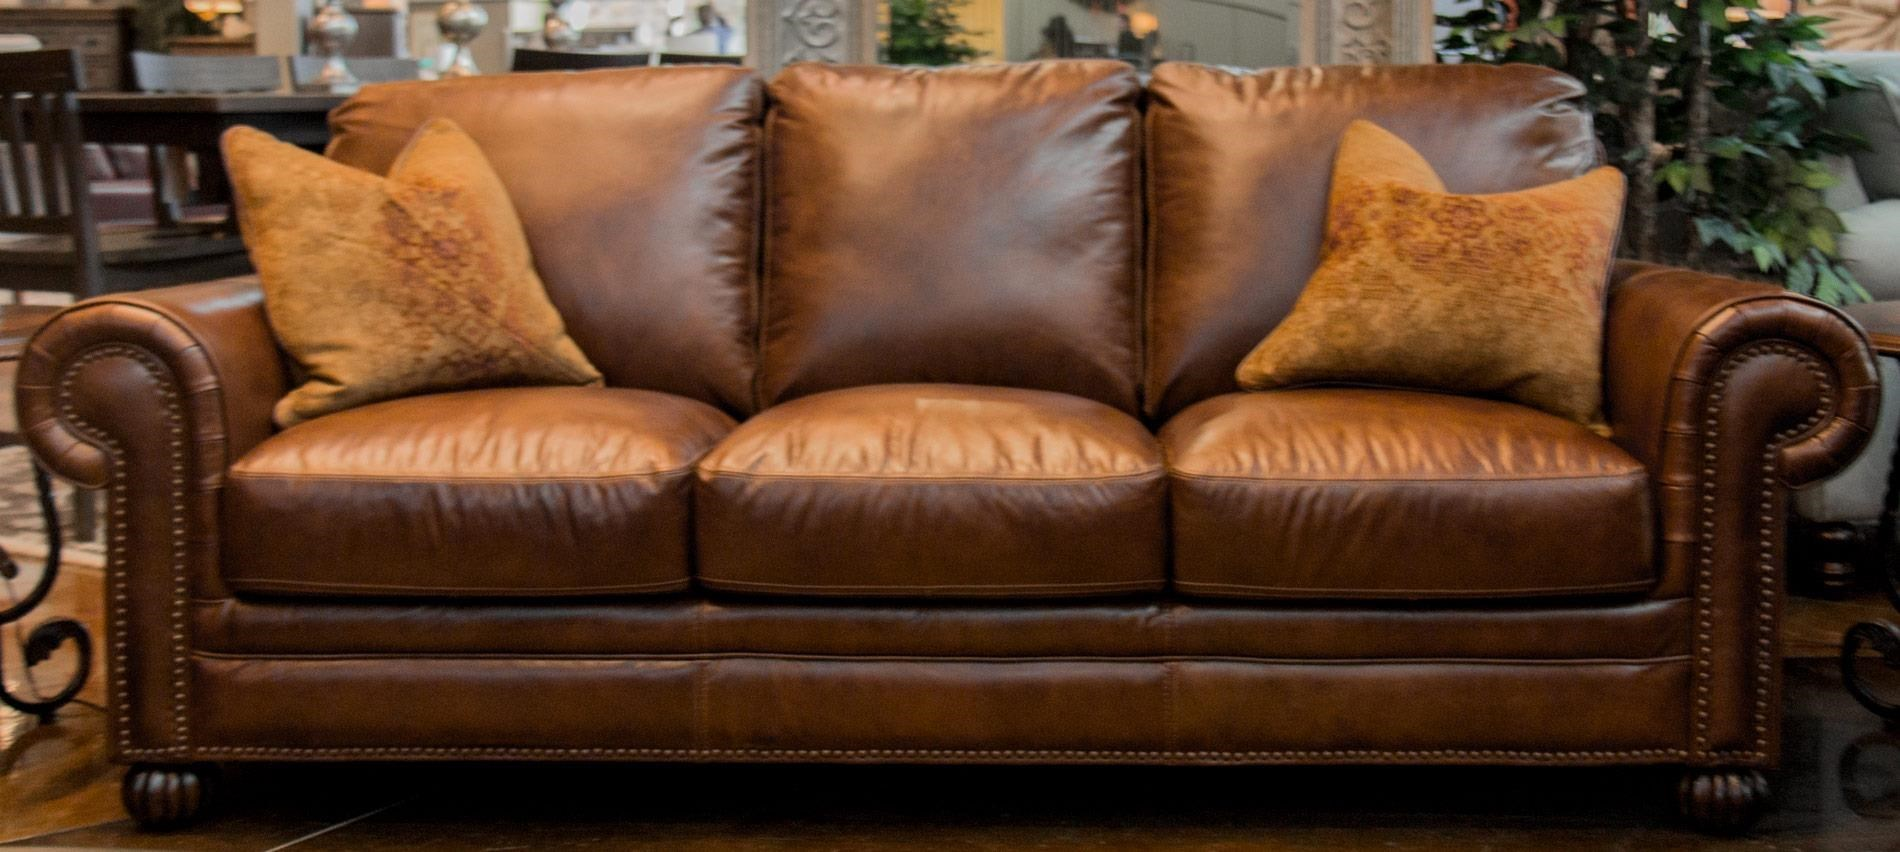 Simon Li Saint JamesTobacco Leather Sofa With Noura Fig Throw Pi. Read  Reviews